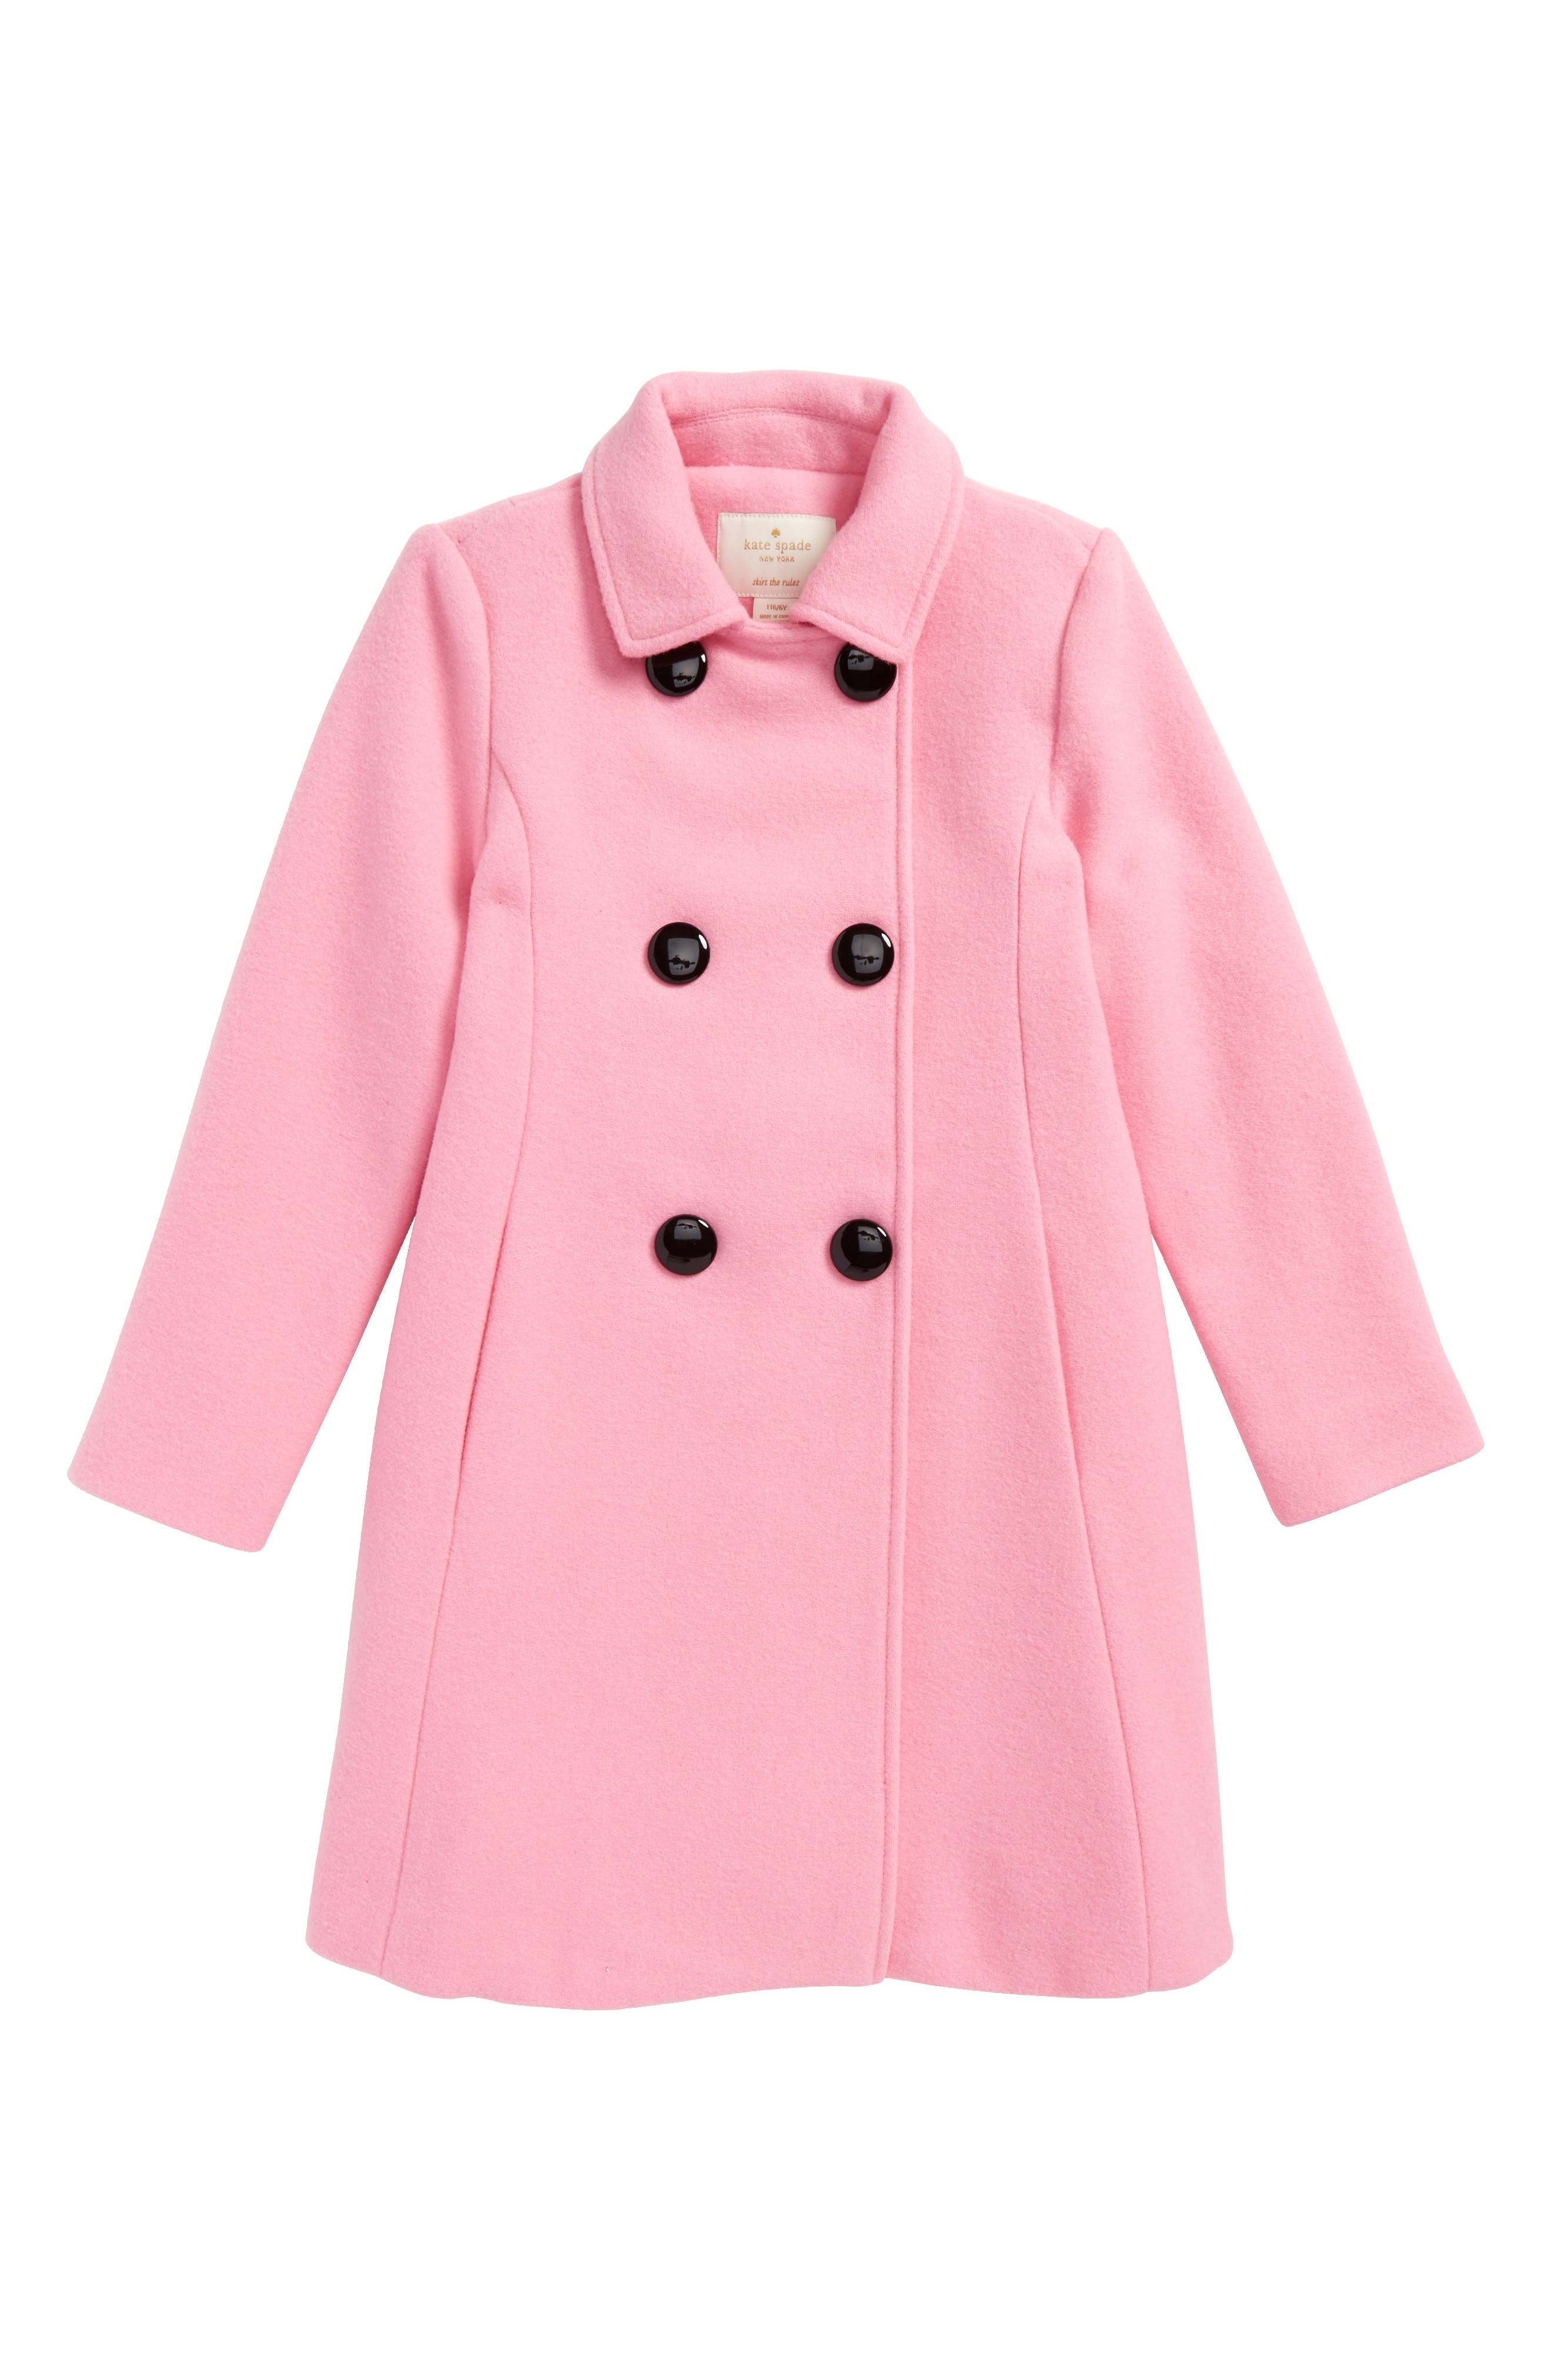 kate spade new york swing coat (Toddler Girls & Little Girls)